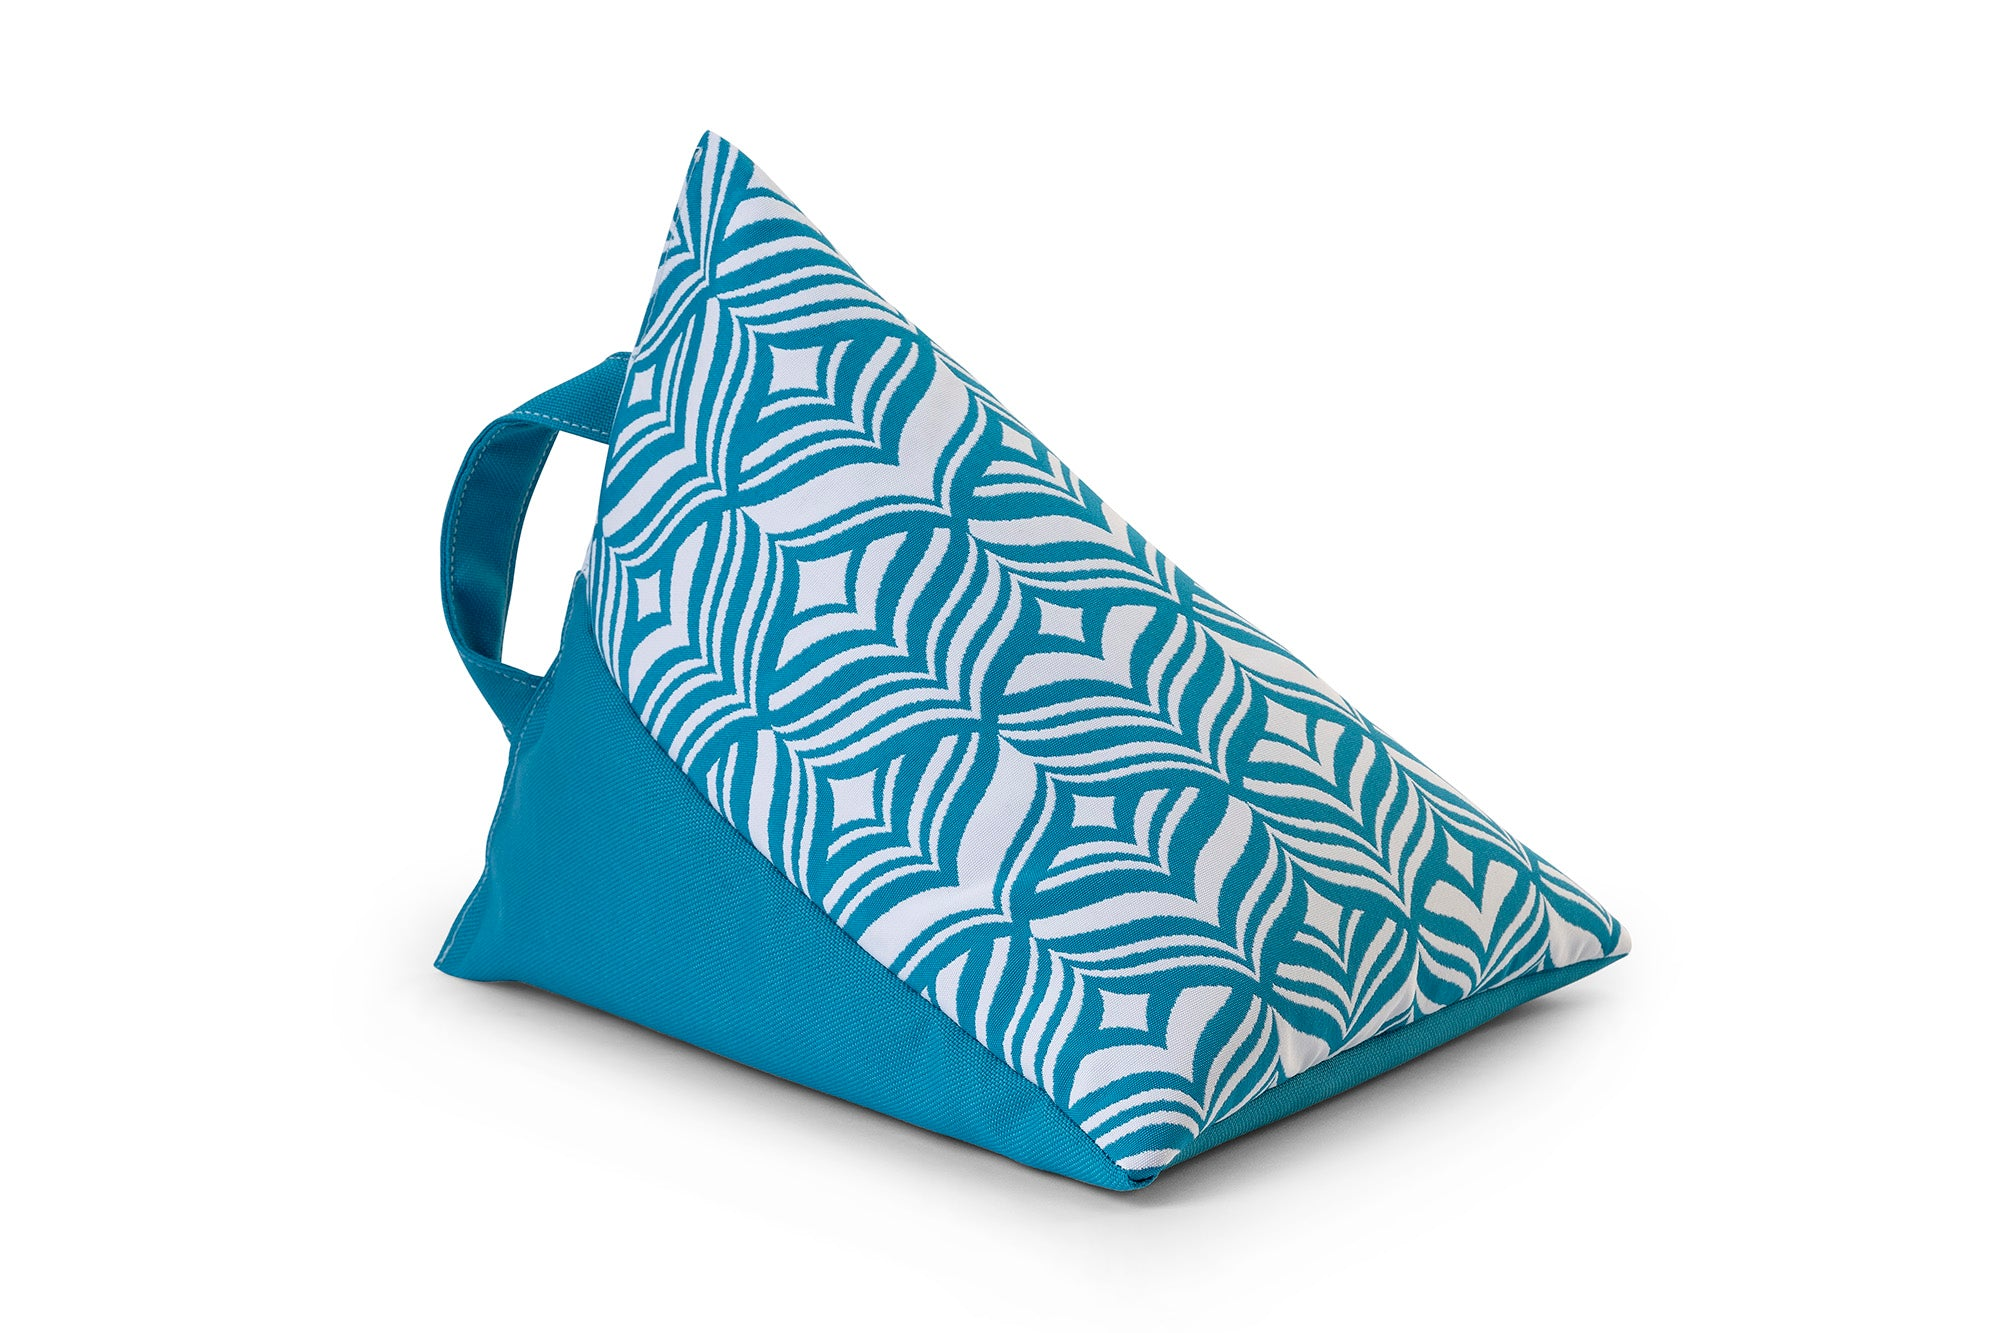 iPad, Tablet & eReader Bean Bag Stand in Tulip Turquoise/Turquoise Base armadillosun